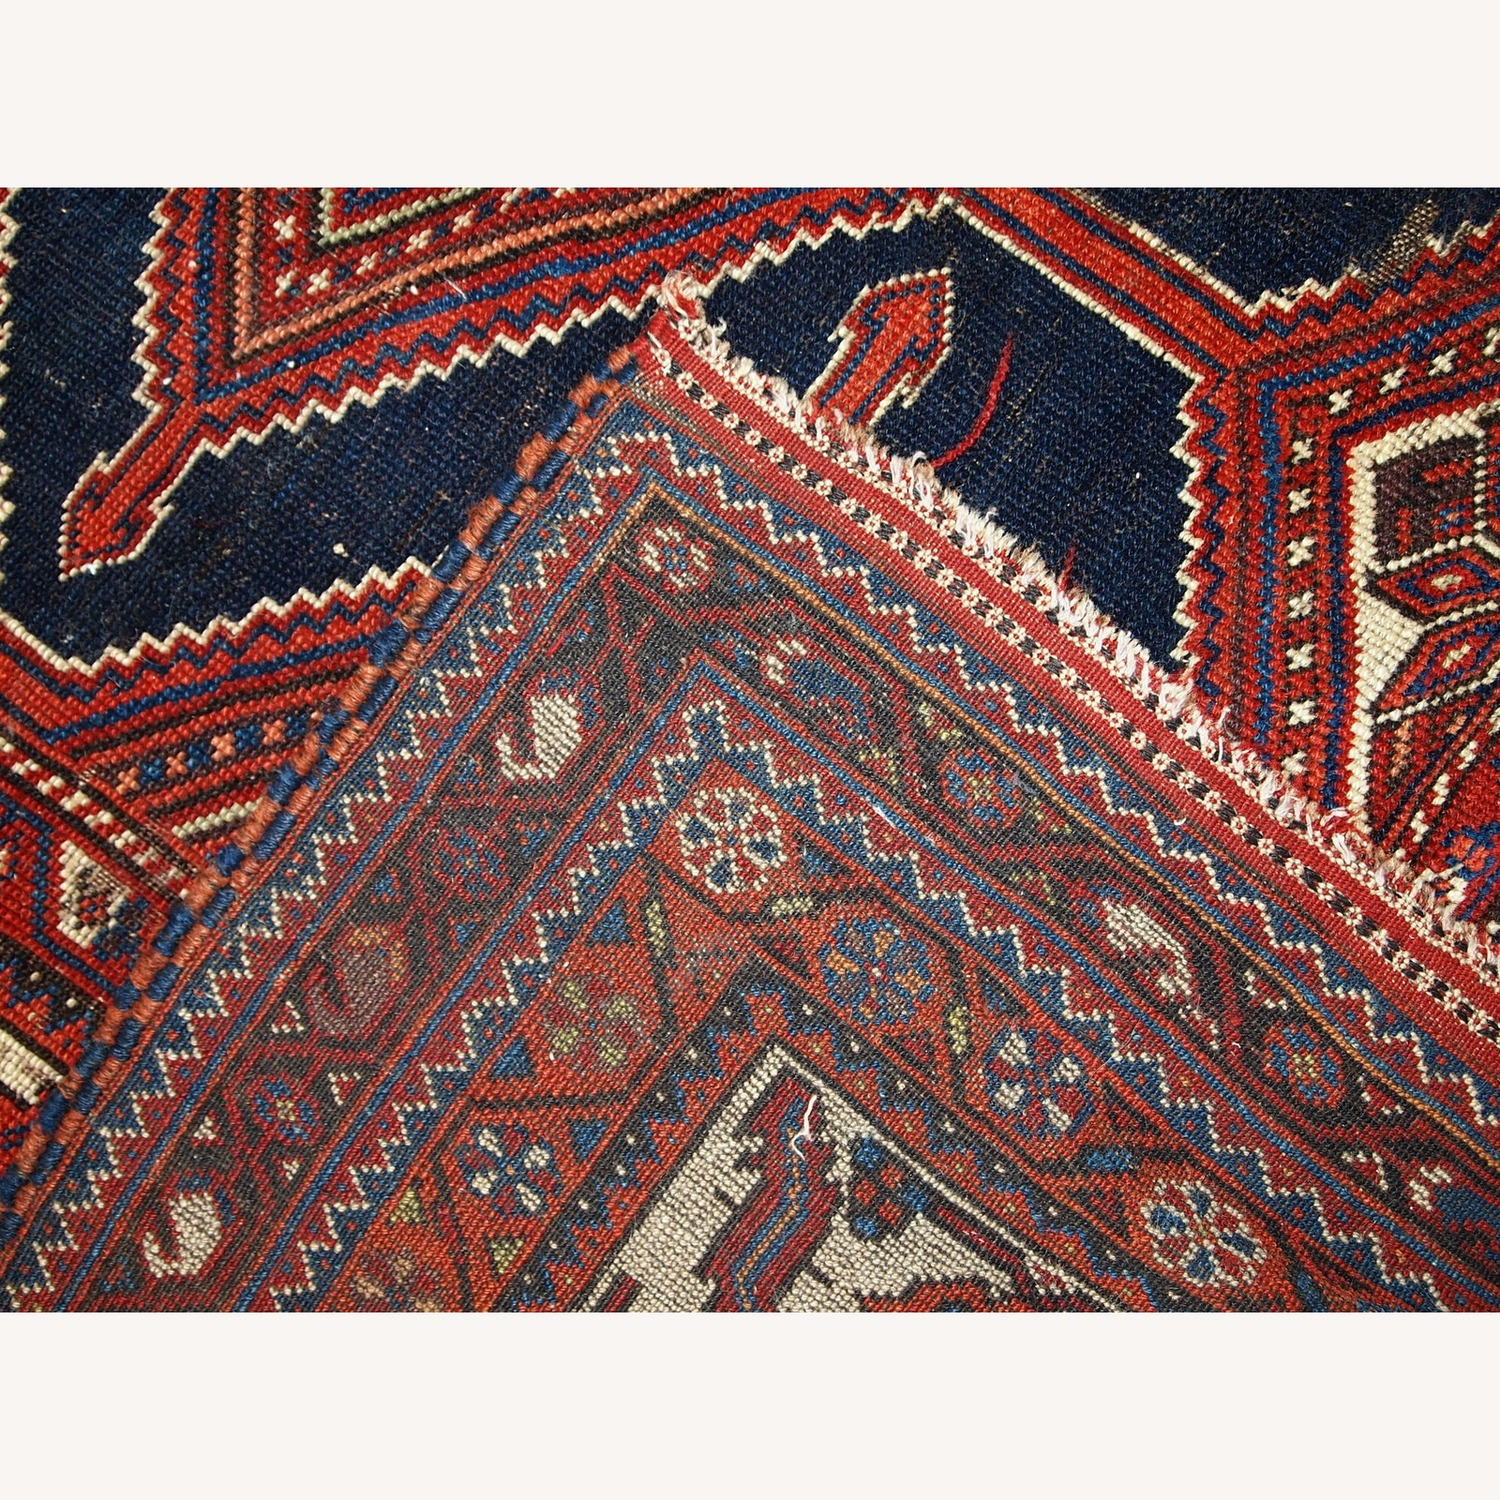 Handmade Antique Distressed Persian Shiraz Rug - image-7